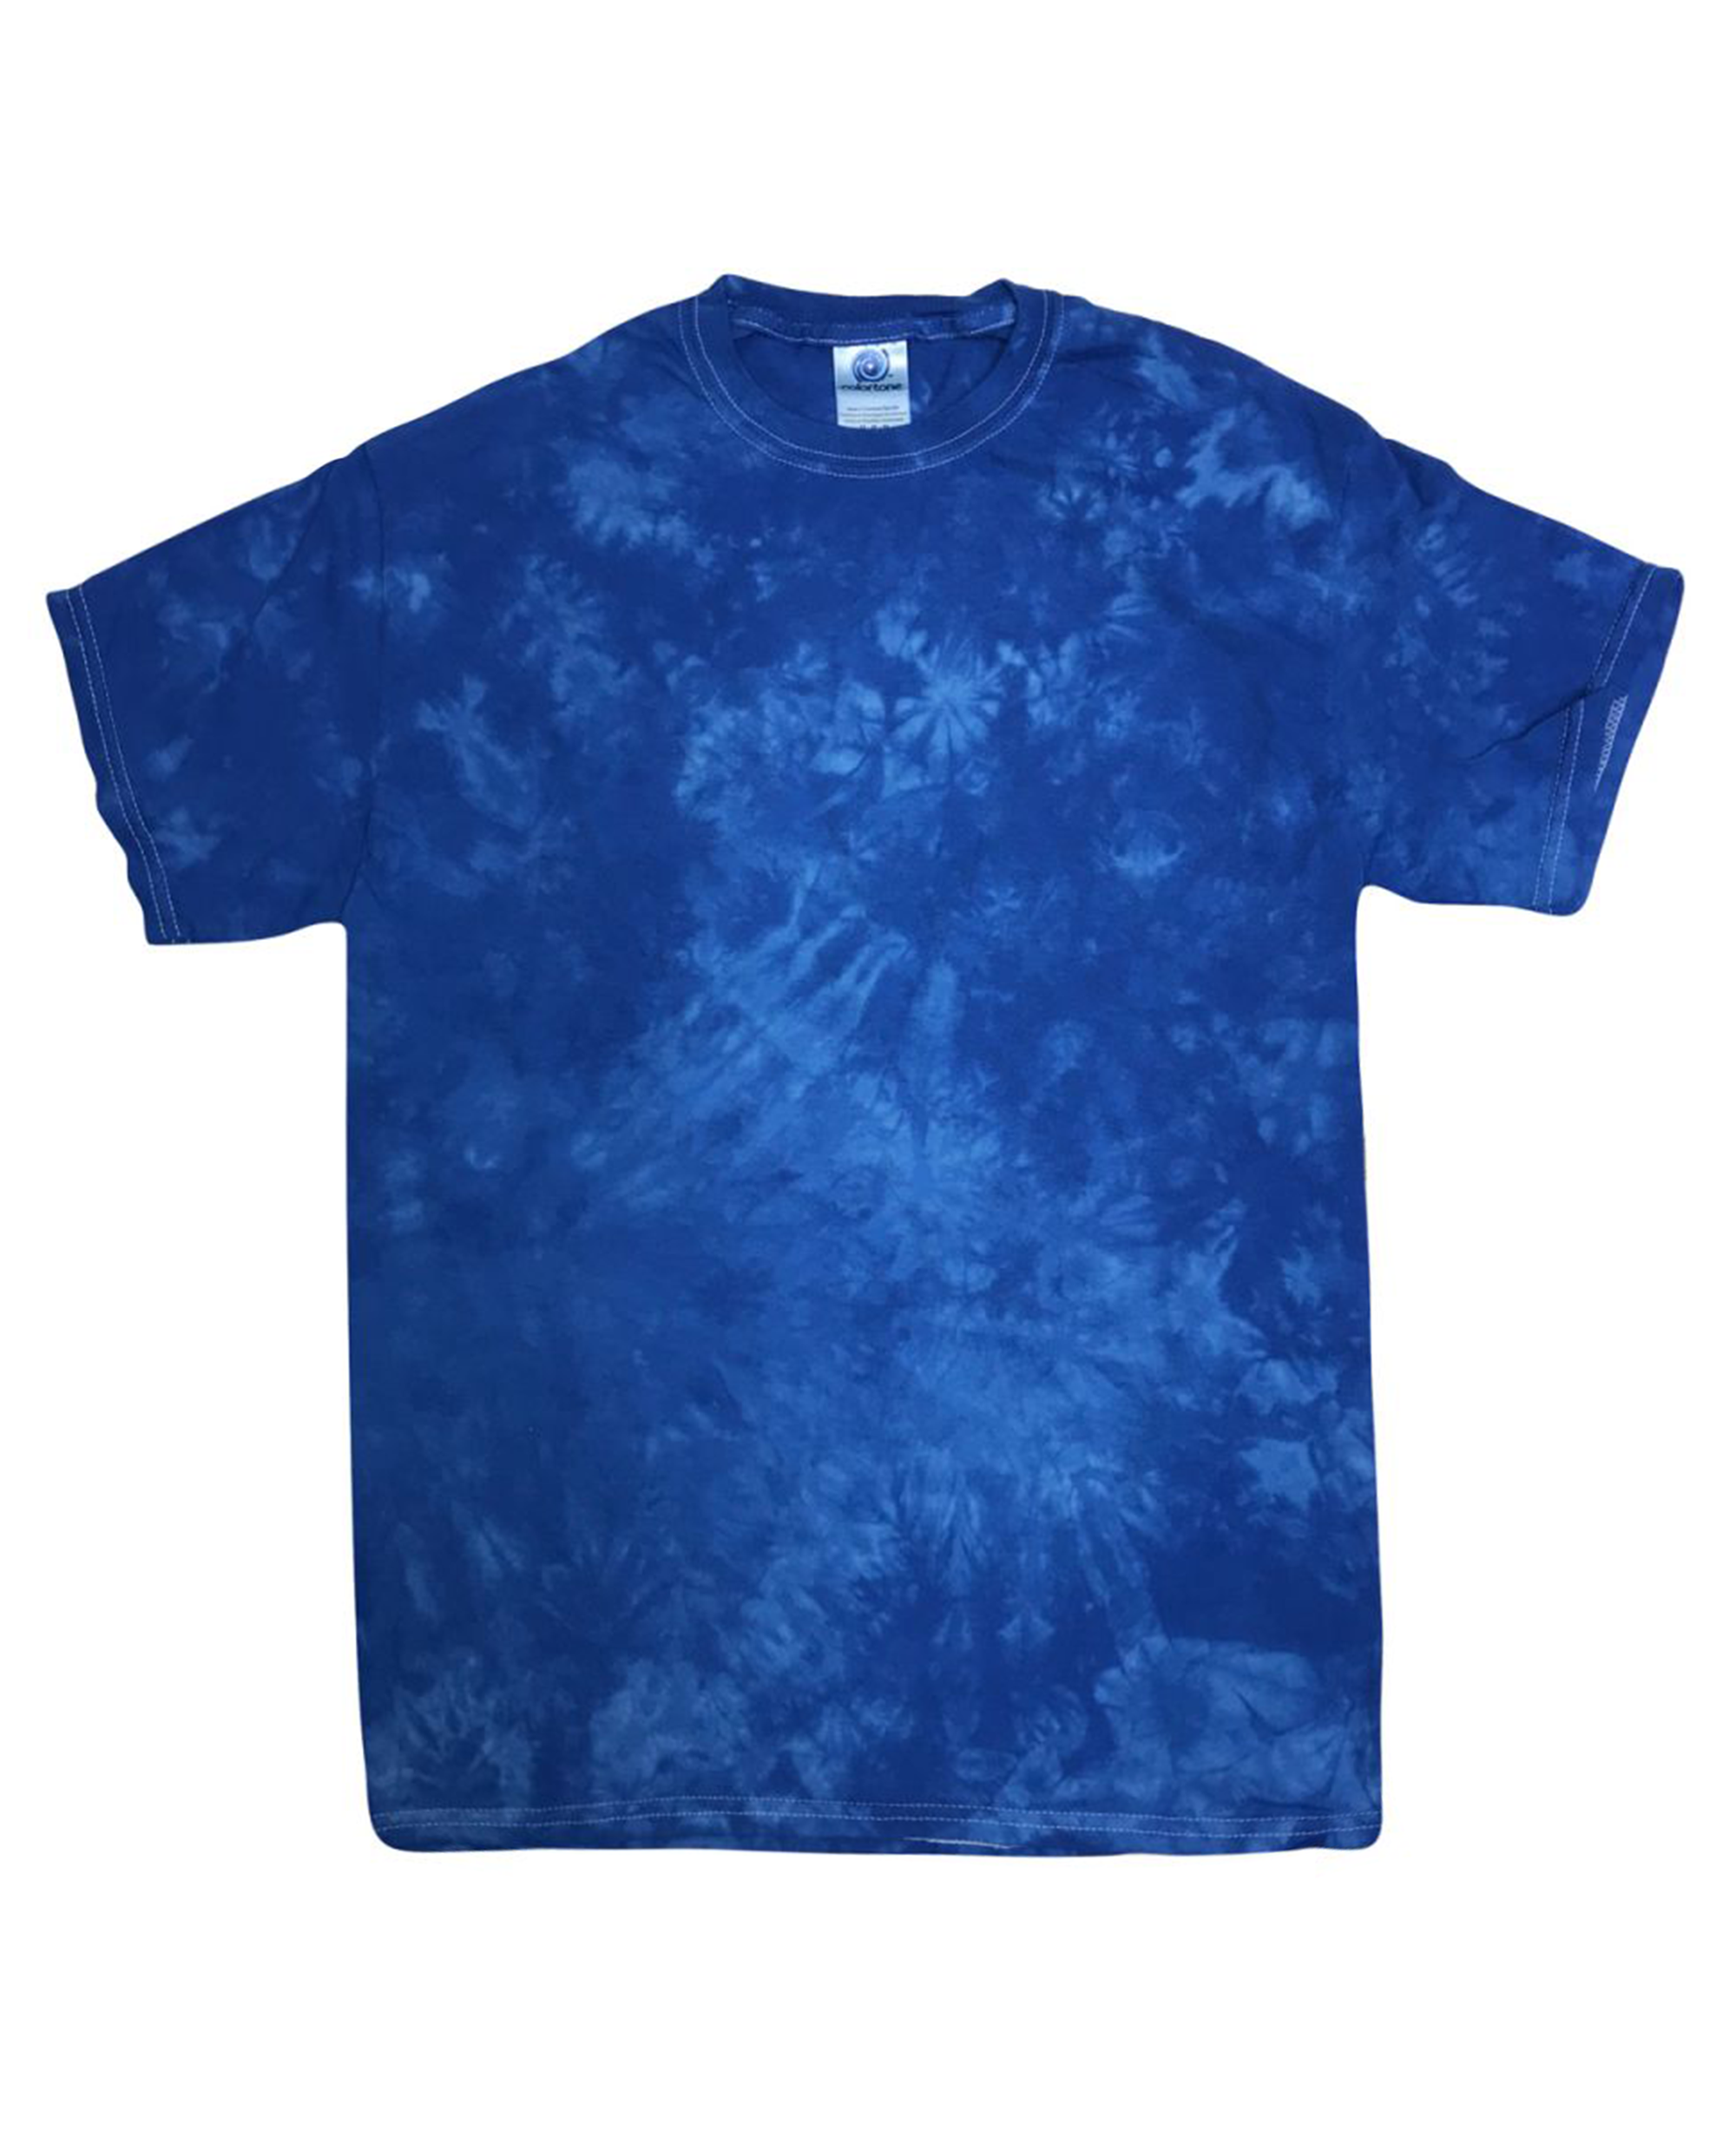 Crystal Wash Tie Dye T-shirt in Royal - T-Shirts - Tie-Dye - BRANMA